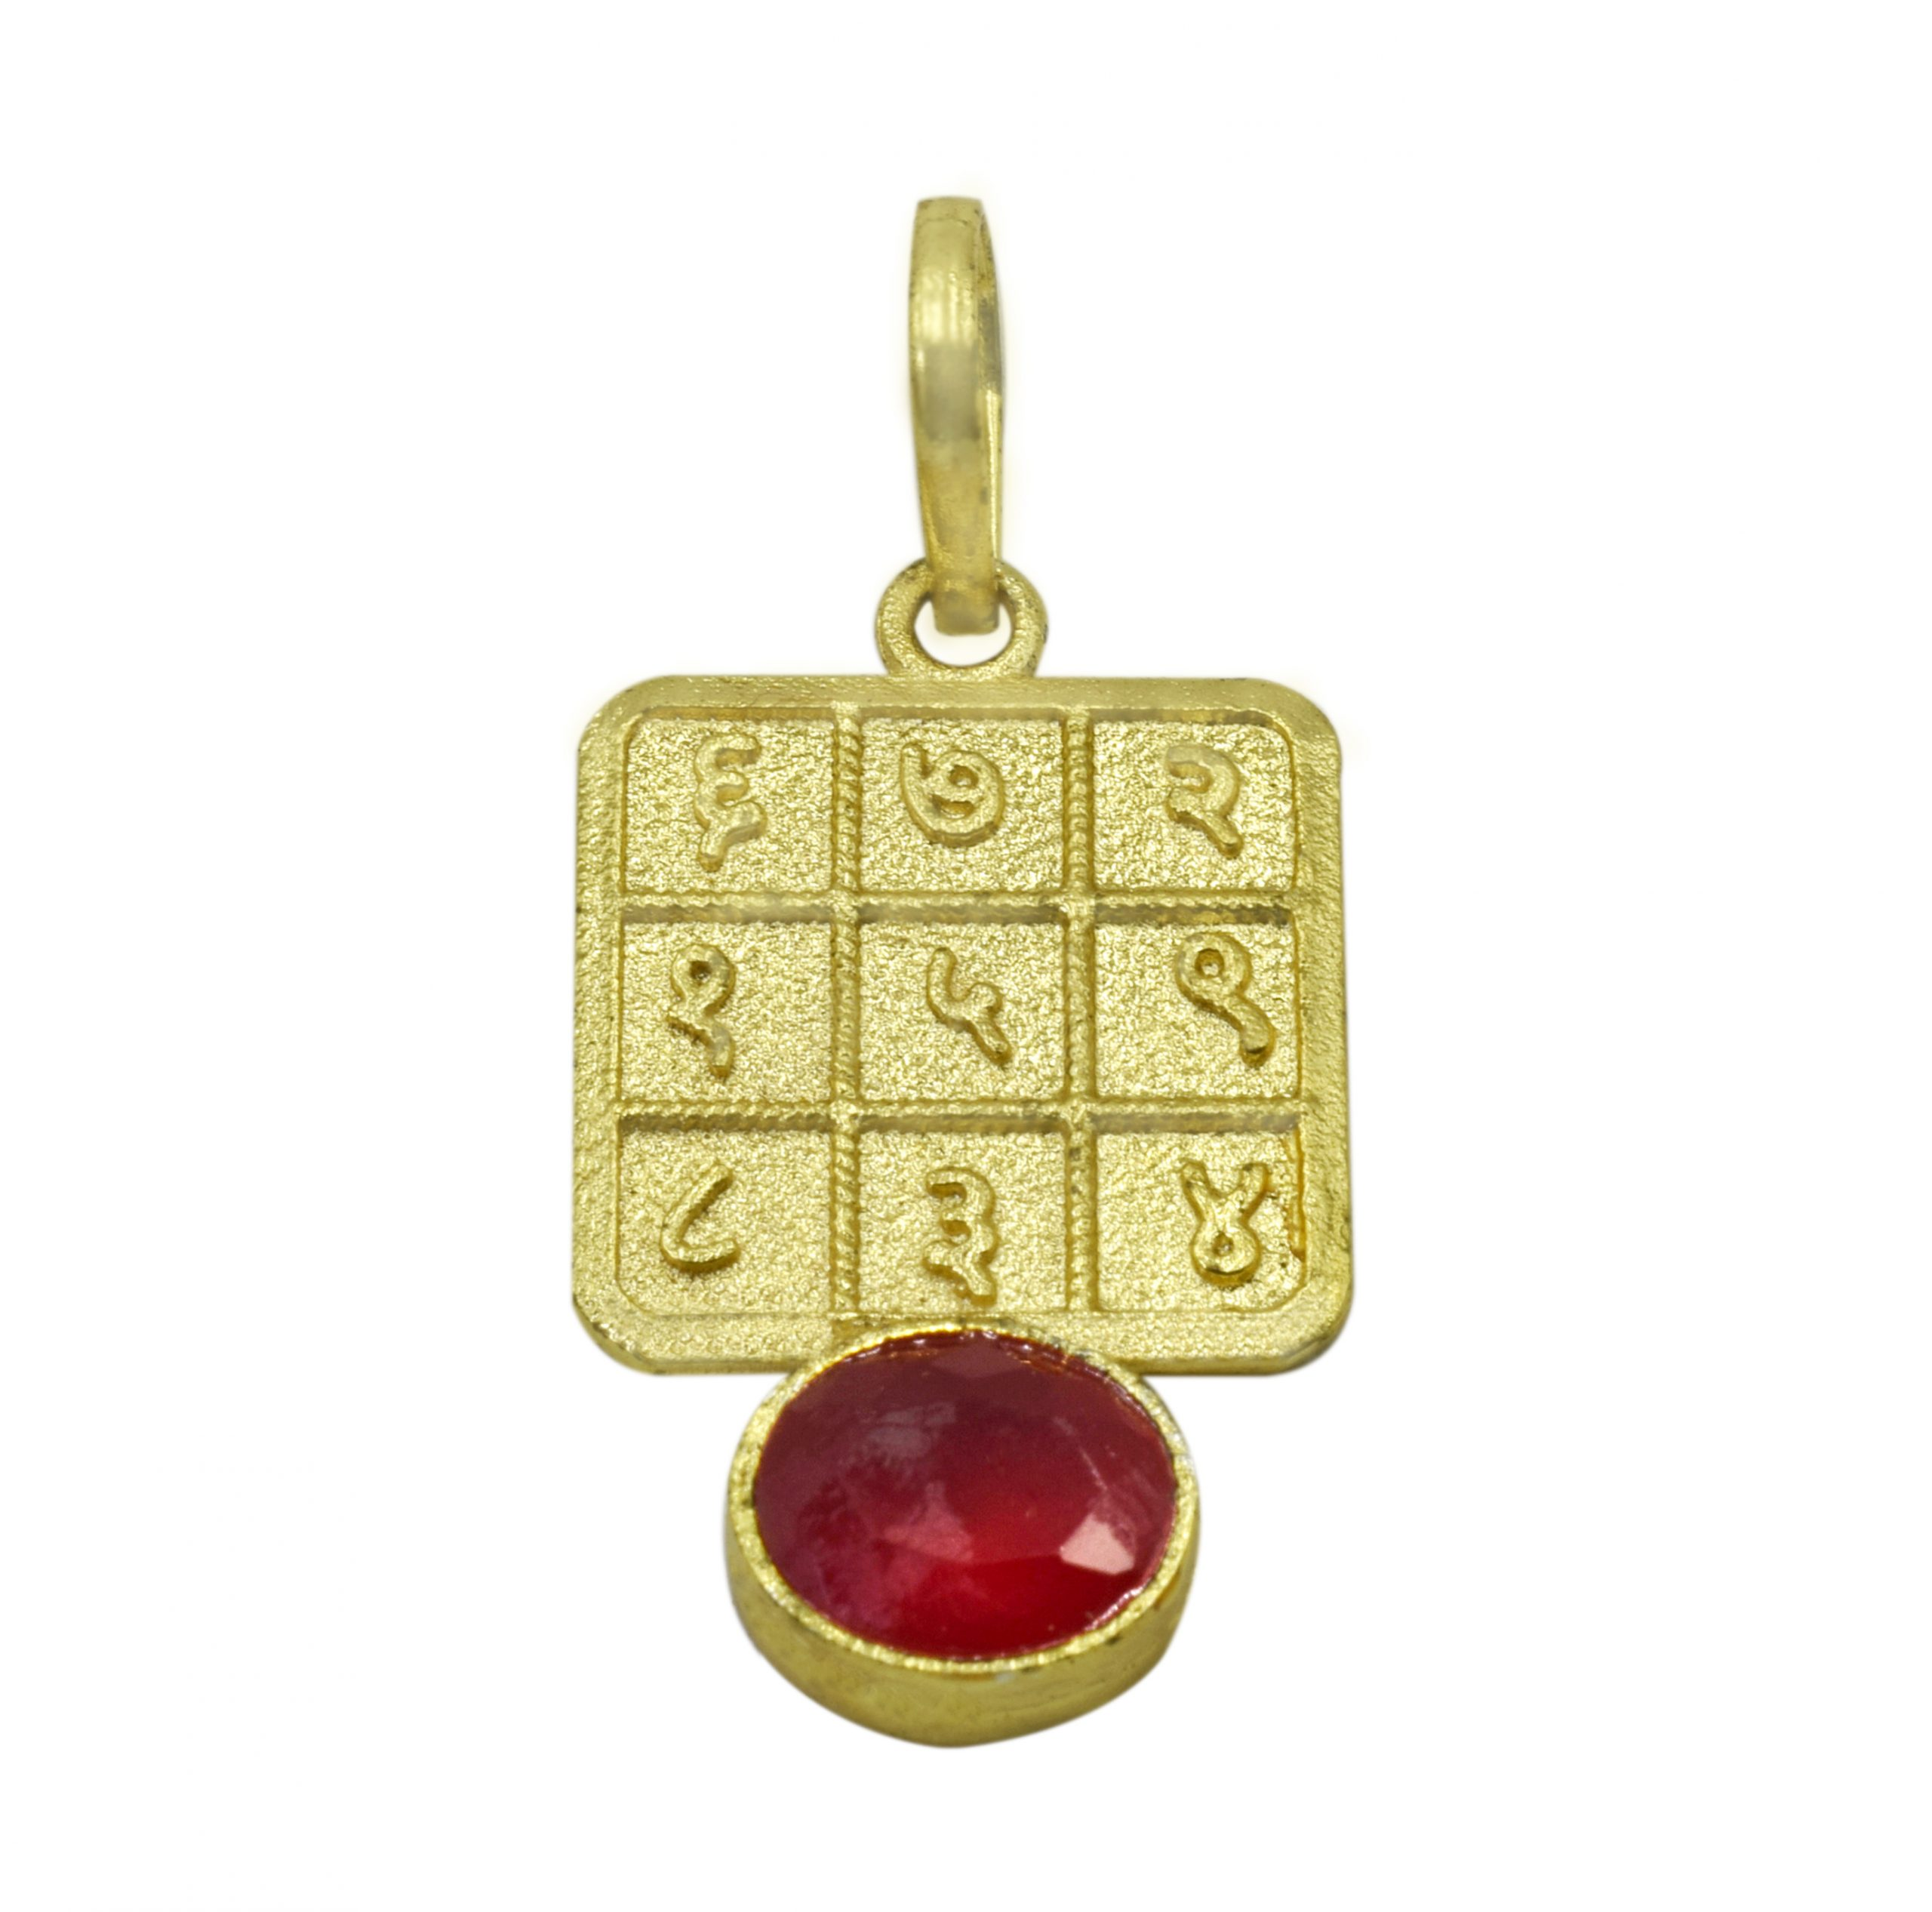 Buy Om Surya Yantra Locket Online